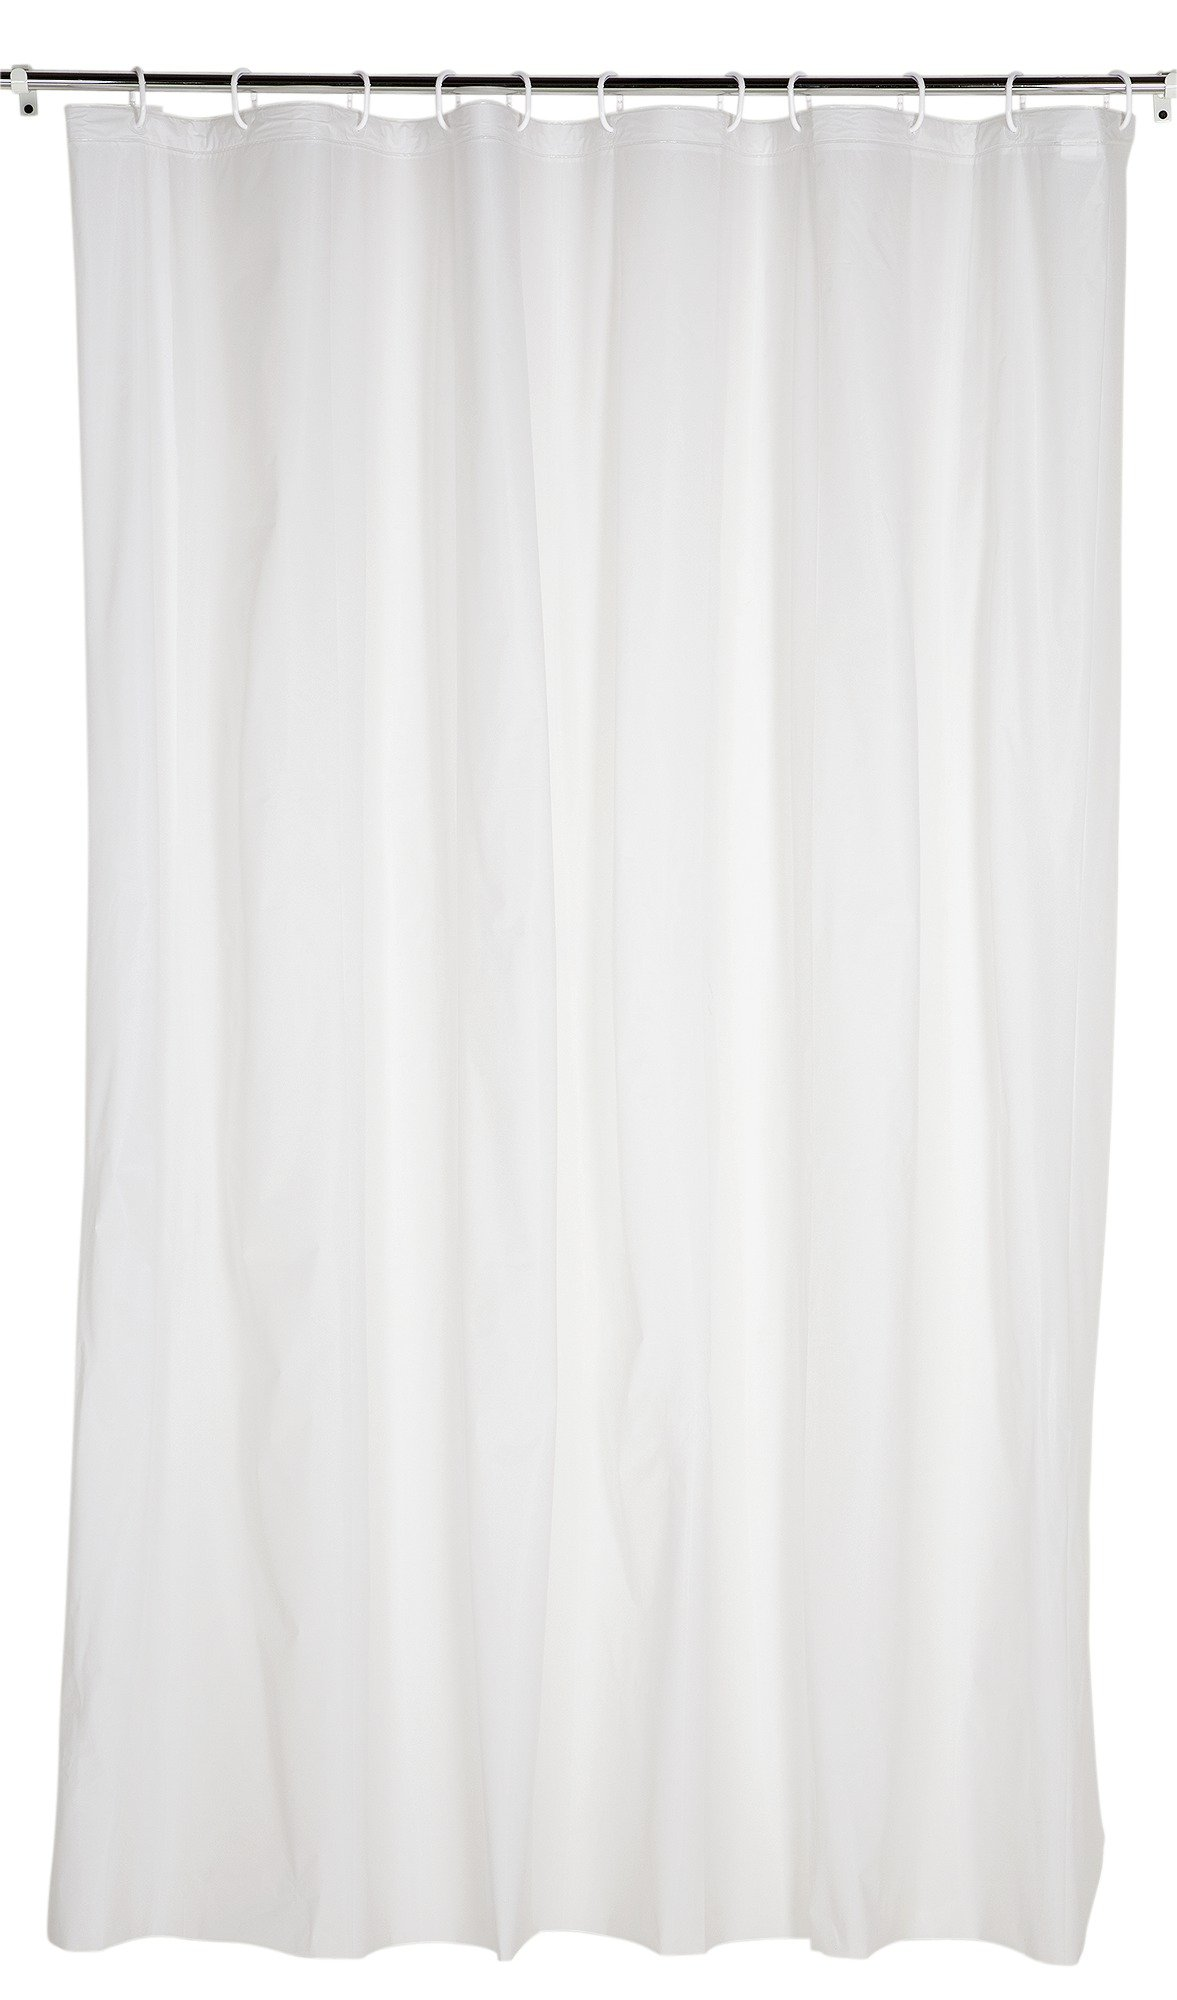 White Shower Curtain buy simple value shower curtain - white at argos.co.uk - your